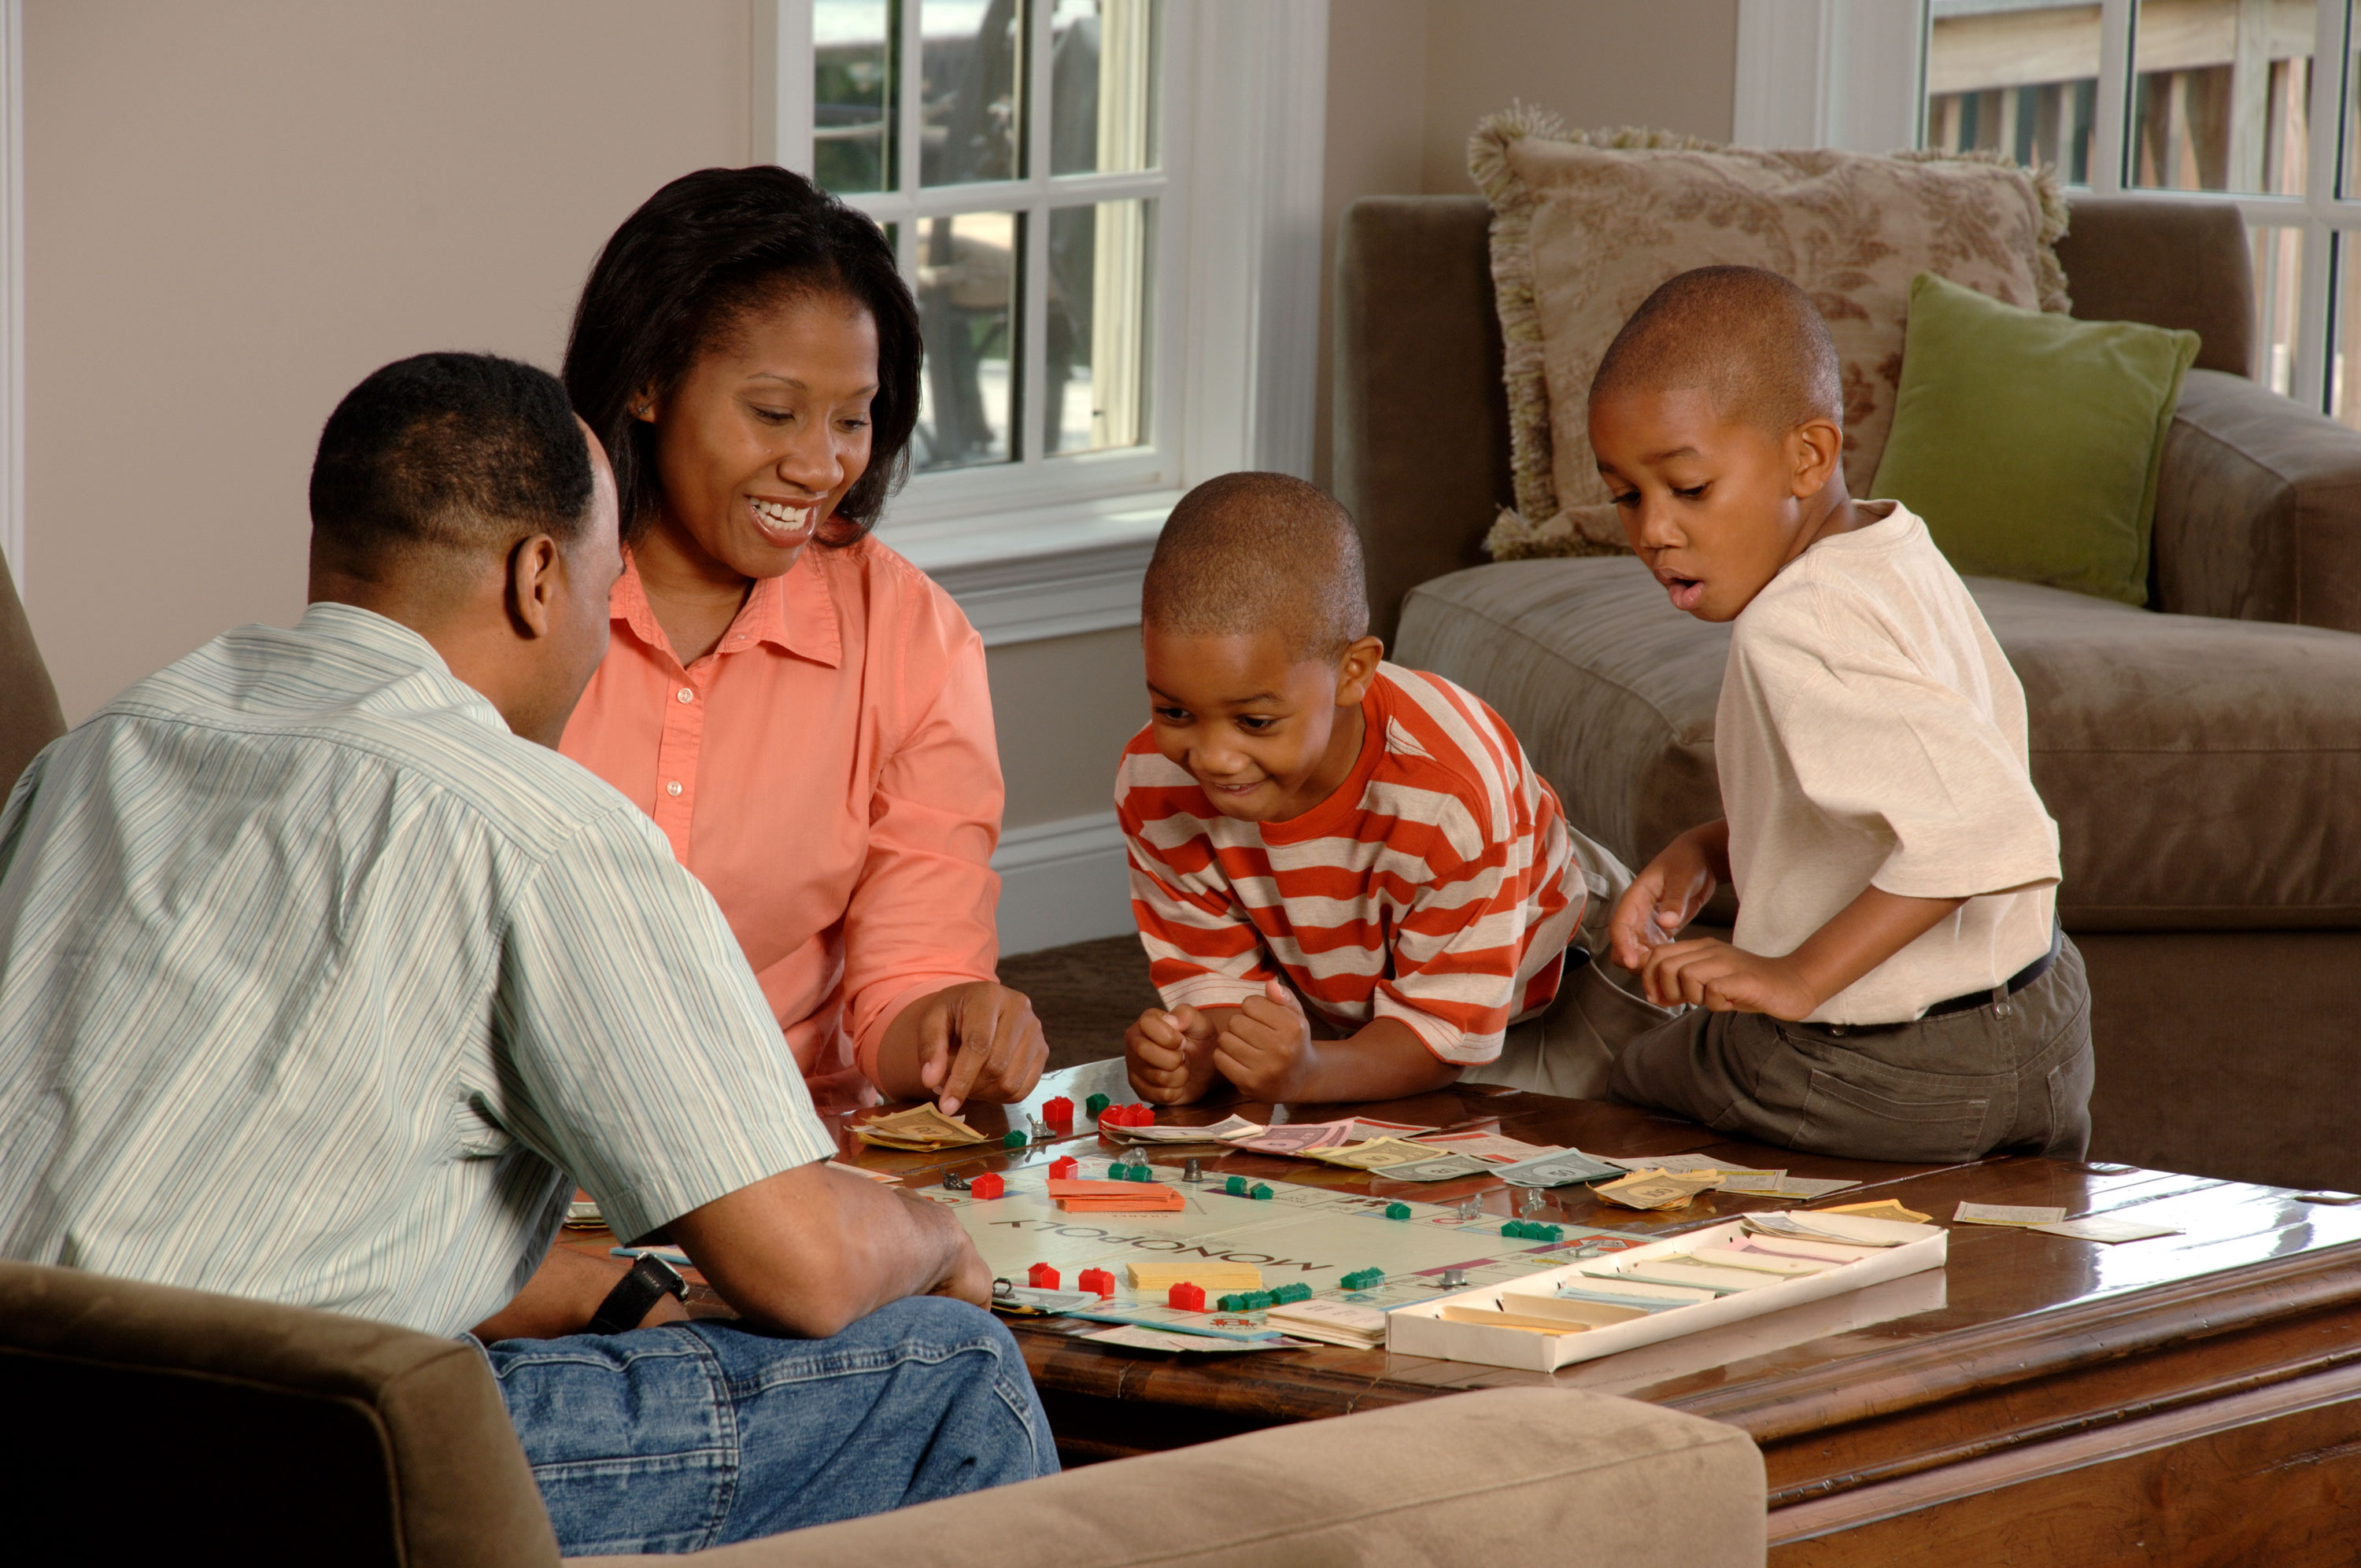 File:Family playing board game.jpg - Wikimedia Commons